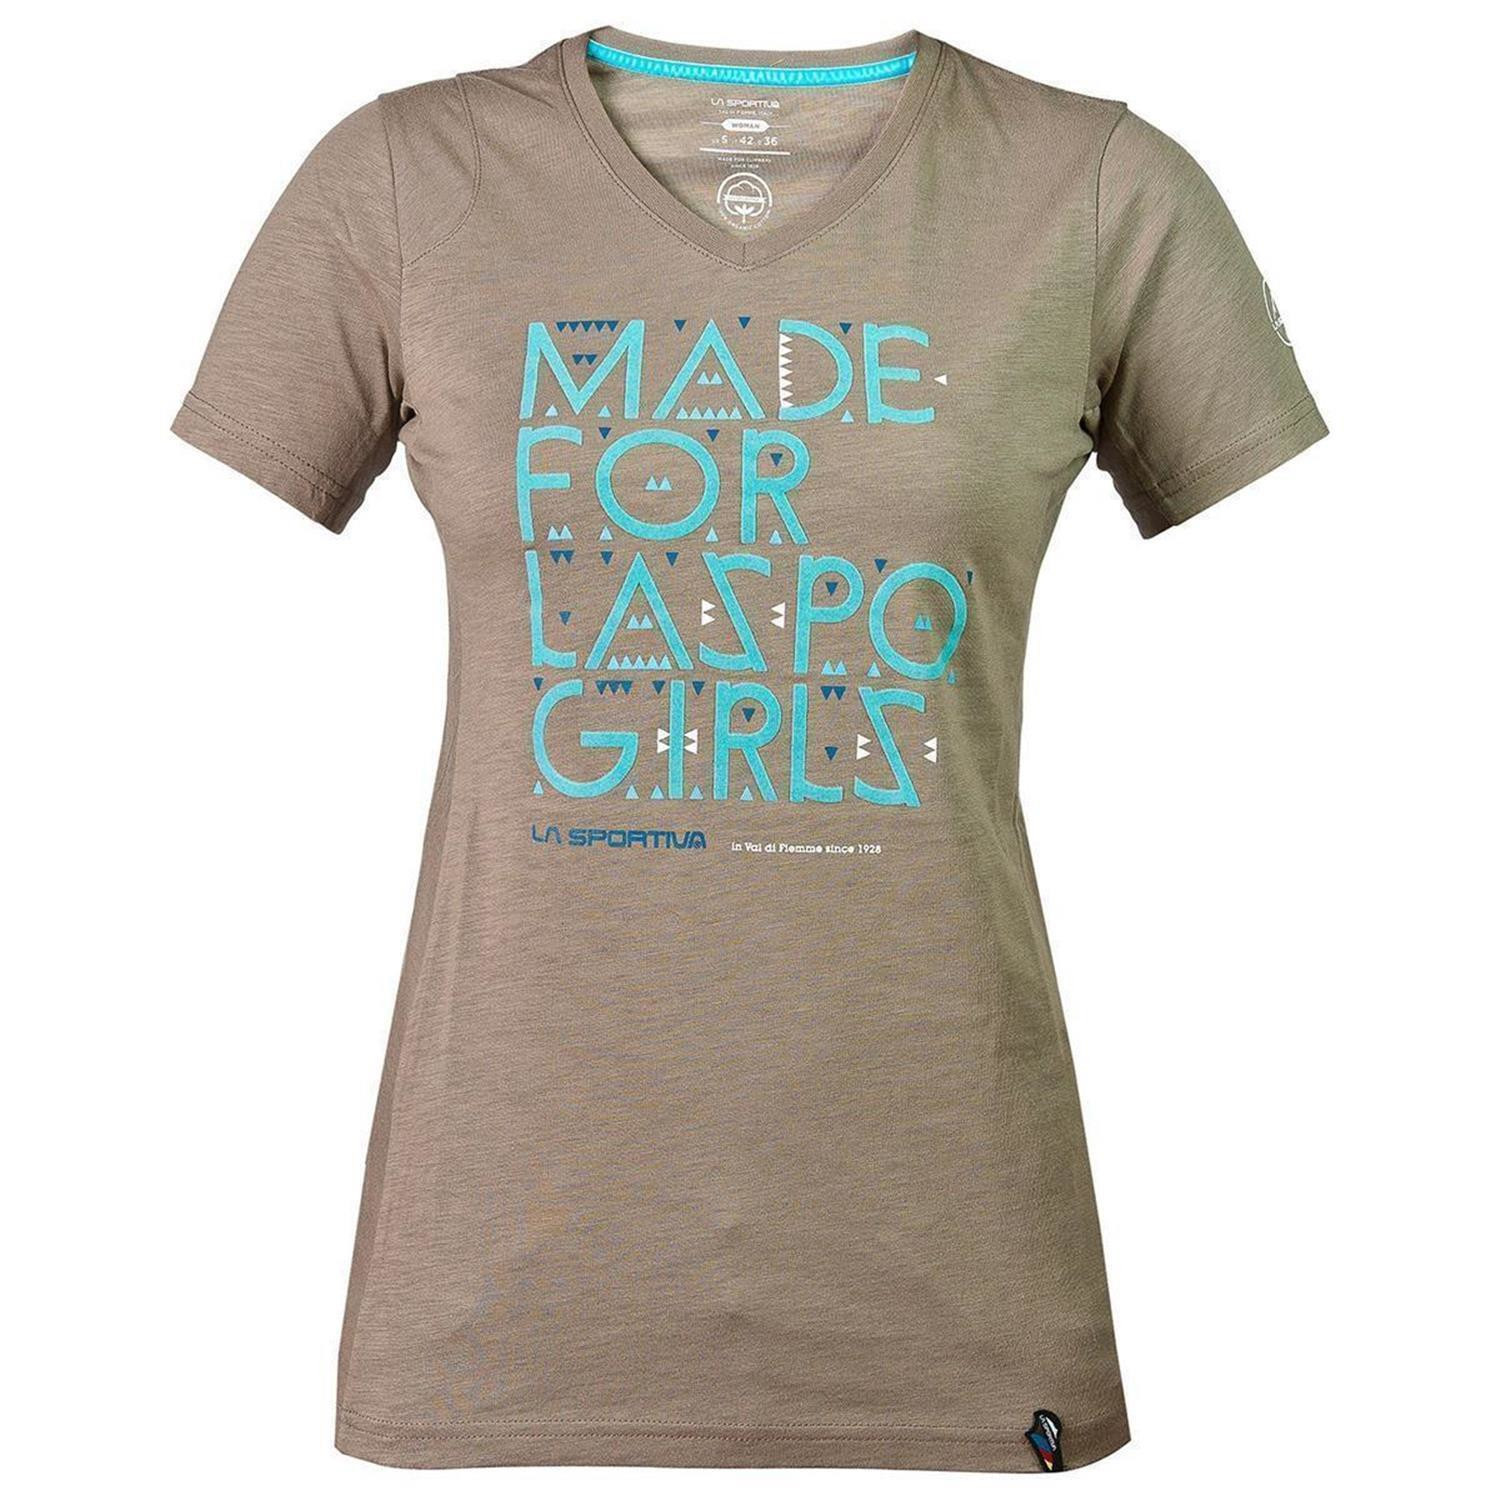 La Sportiva For Laspo Girls T-Shirt